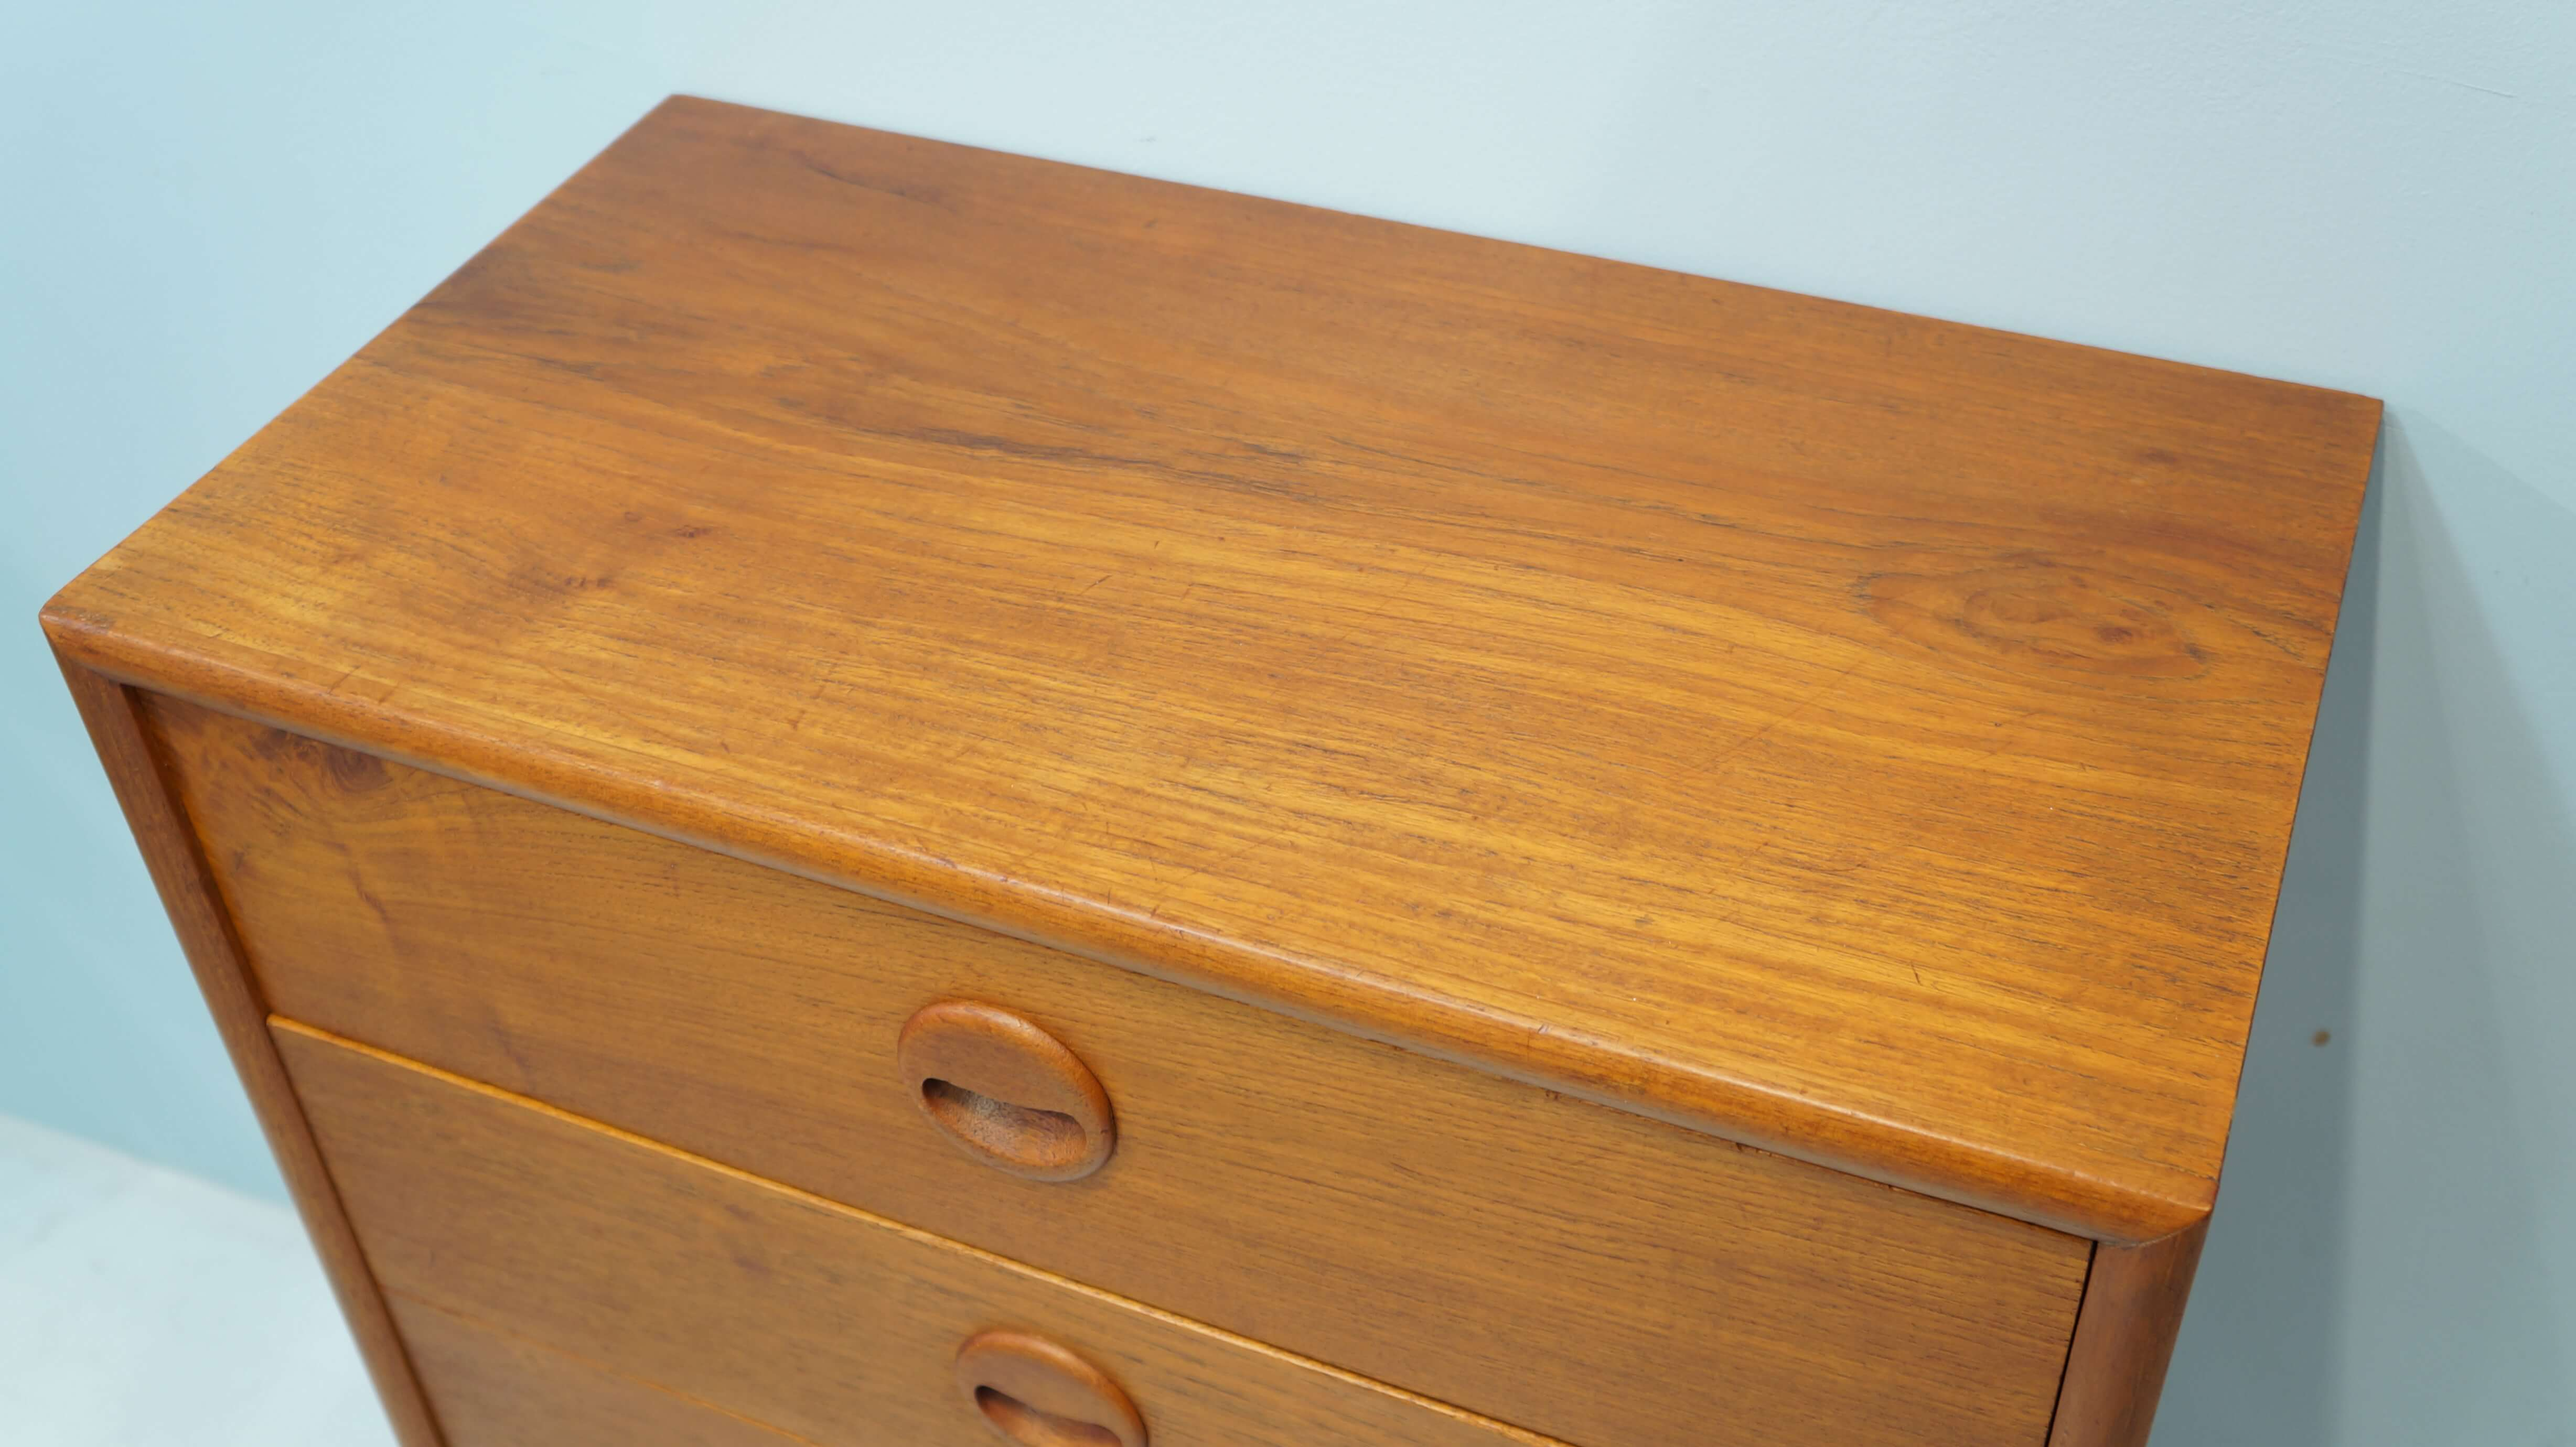 Danish Vintage CHEST / DRAWER 北欧 デンマーク ヴィンテージ チェスト